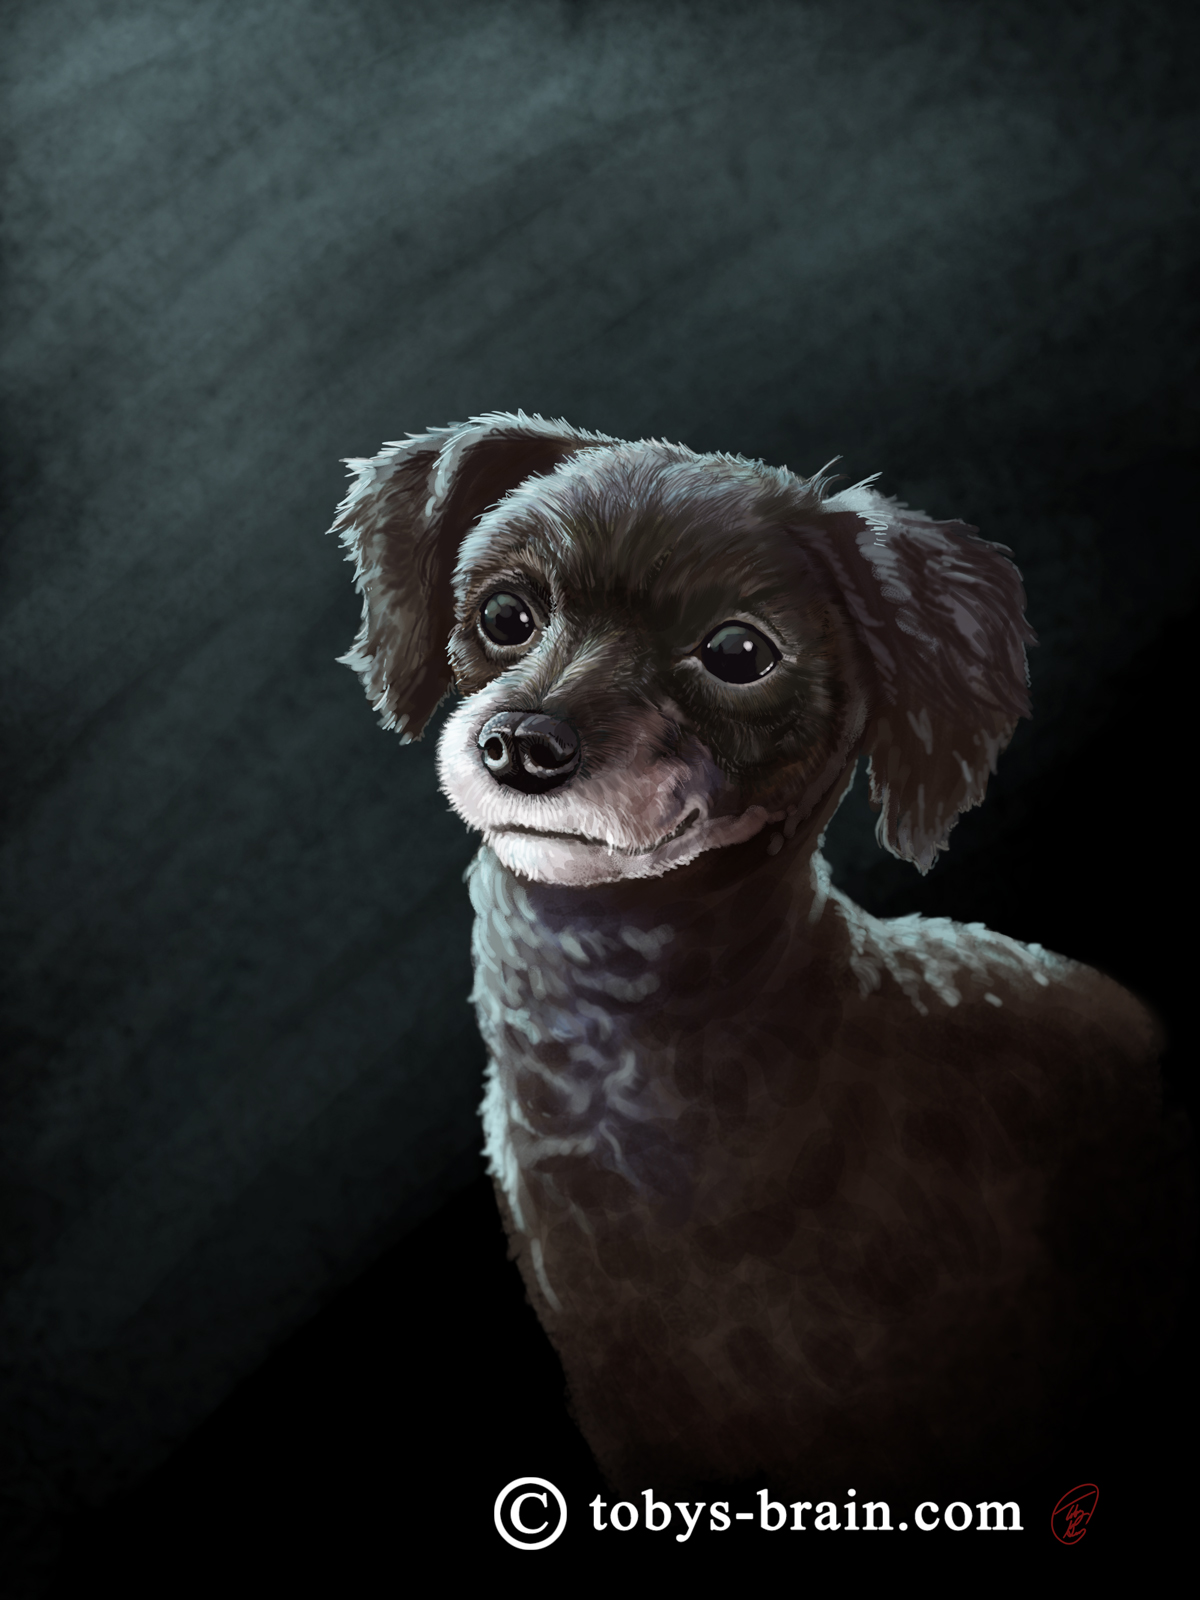 Pet portrait of L.S. Gagnon's late dog, Coco.